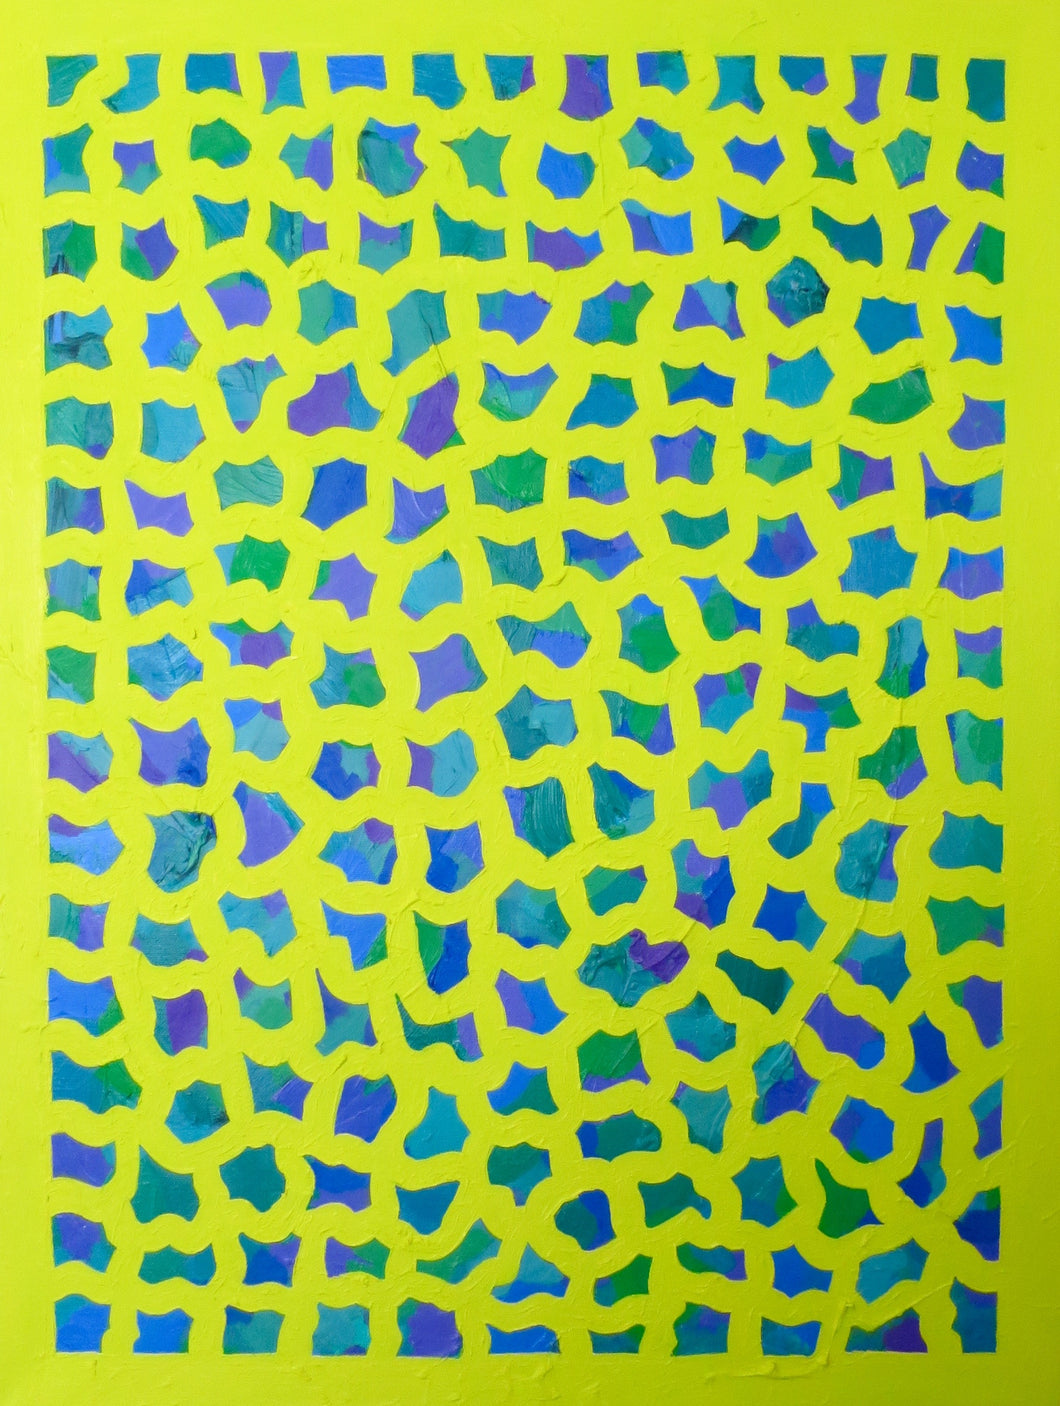 Yellow, Blue, & Green Oil Painting 18 x 24 in, Elaine Kuckertz